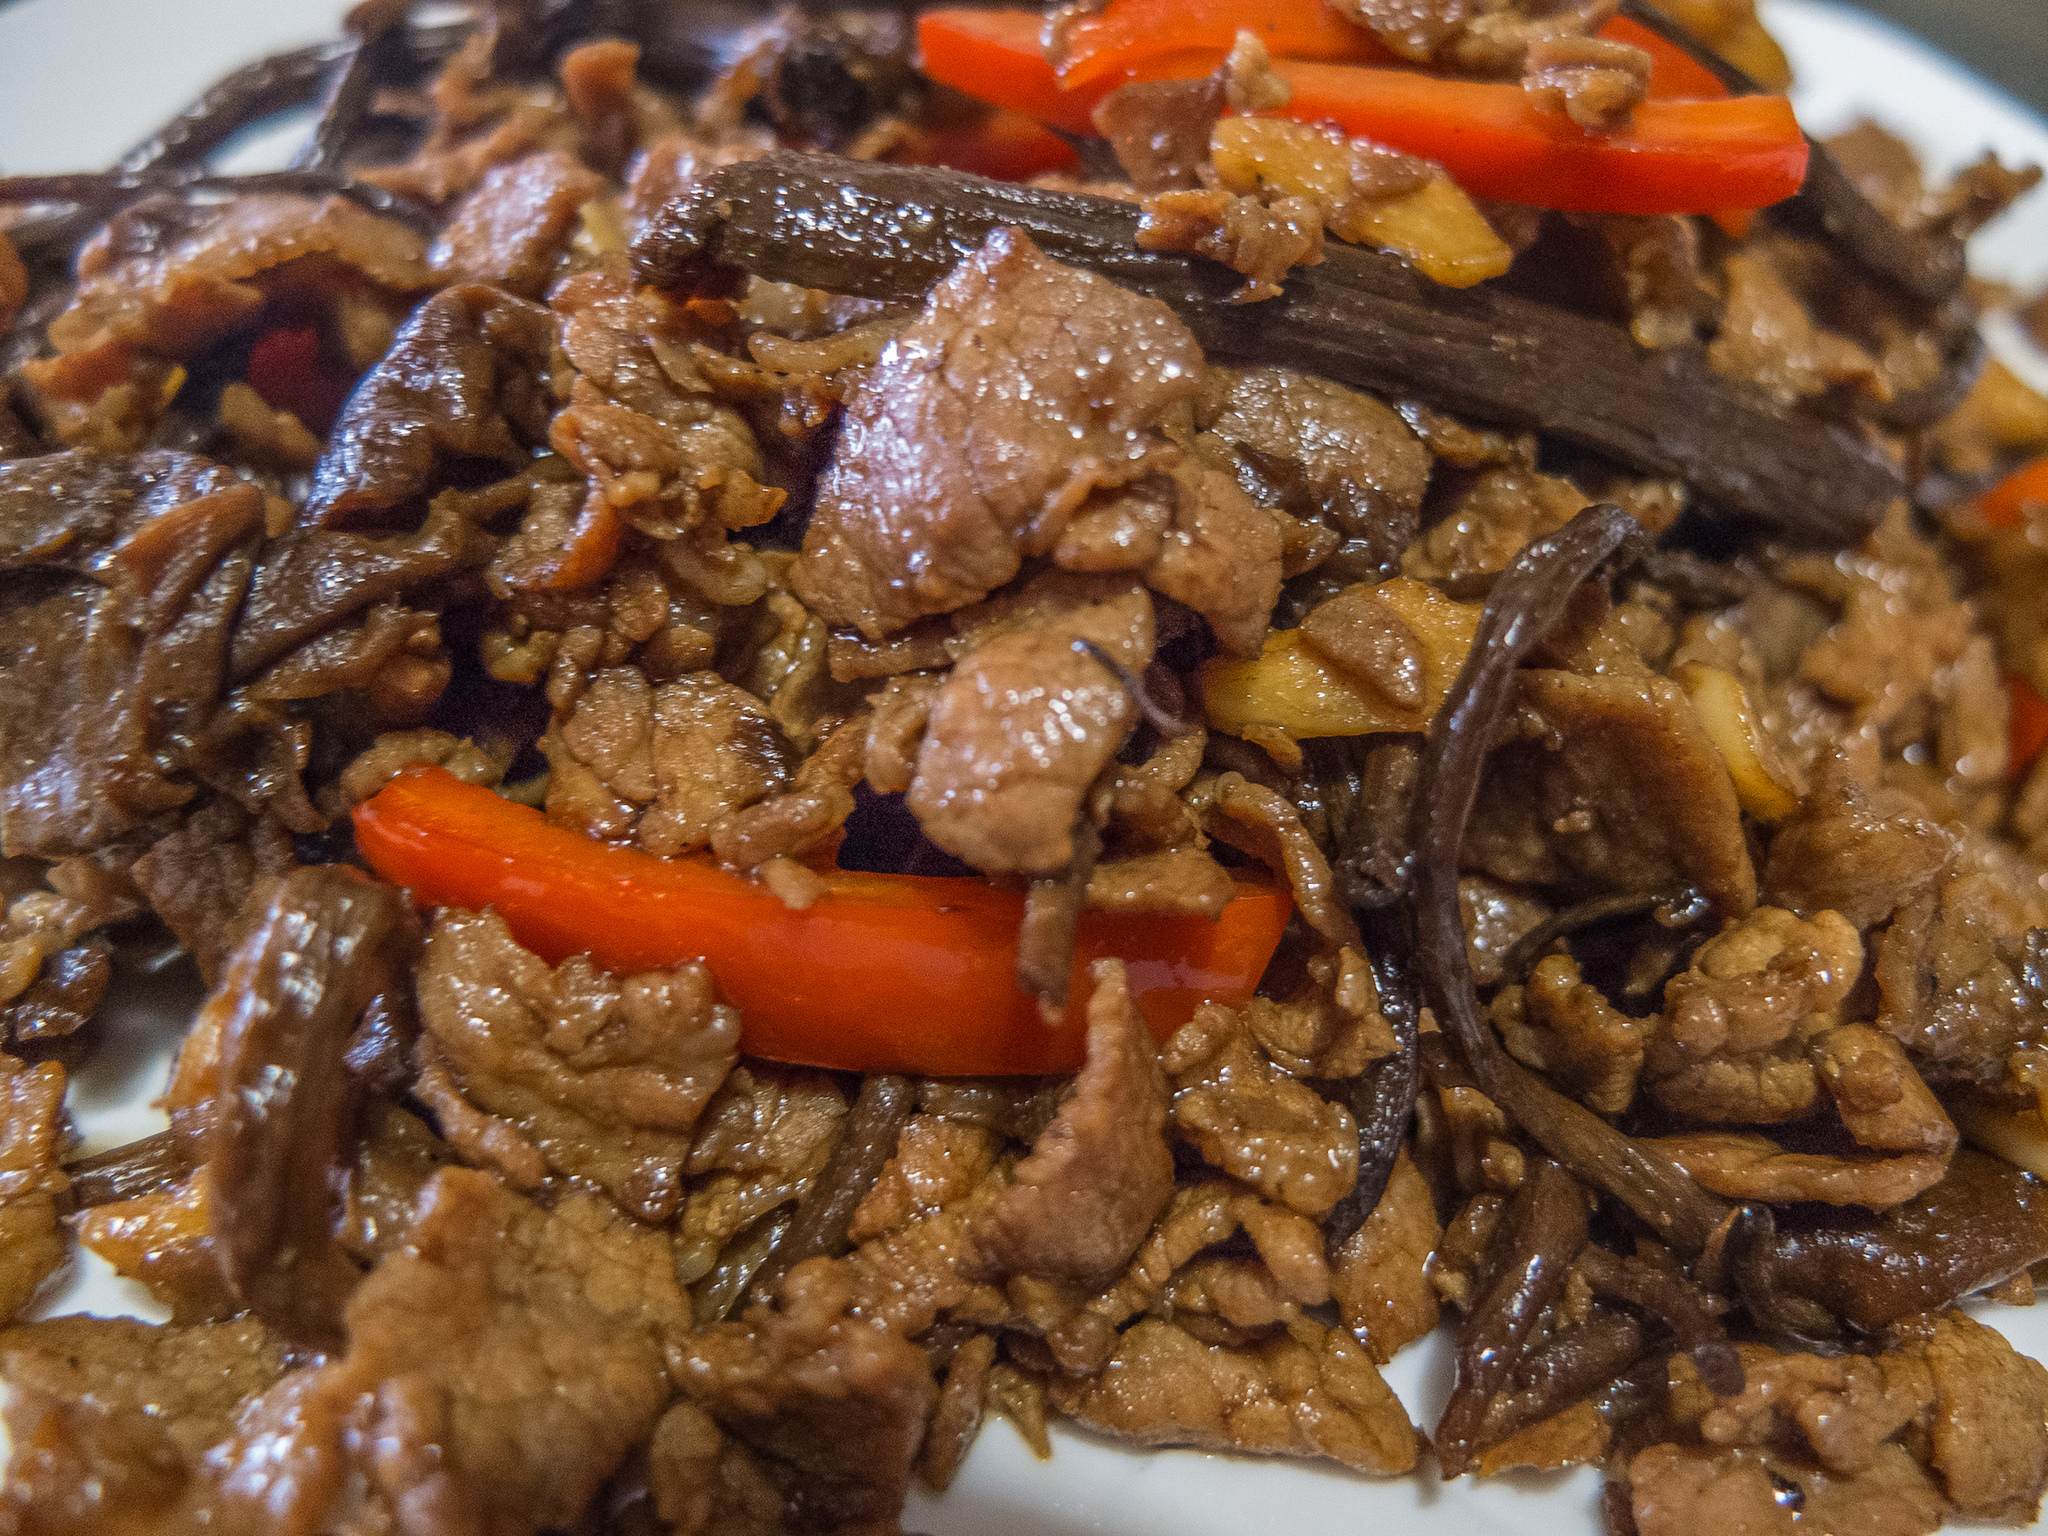 Beef and Pepper Dish| © Roland Tanglao/Flickr